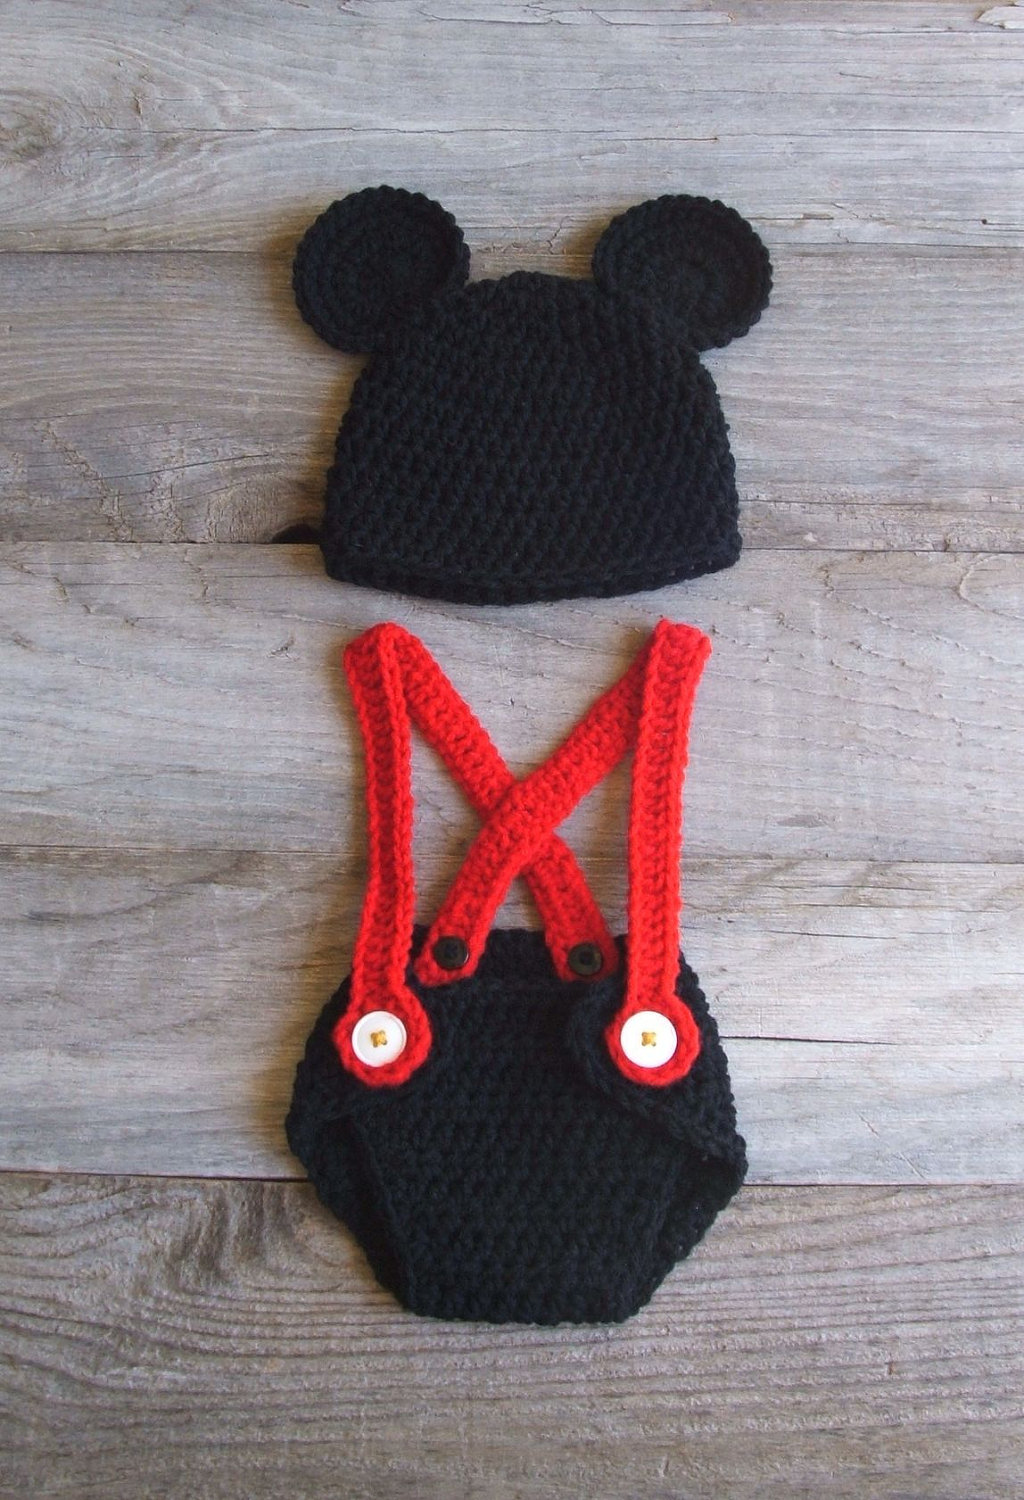 Free Crochet Patterns For Baby Halloween Costumes : julies blog: Crochet Baby Costumes